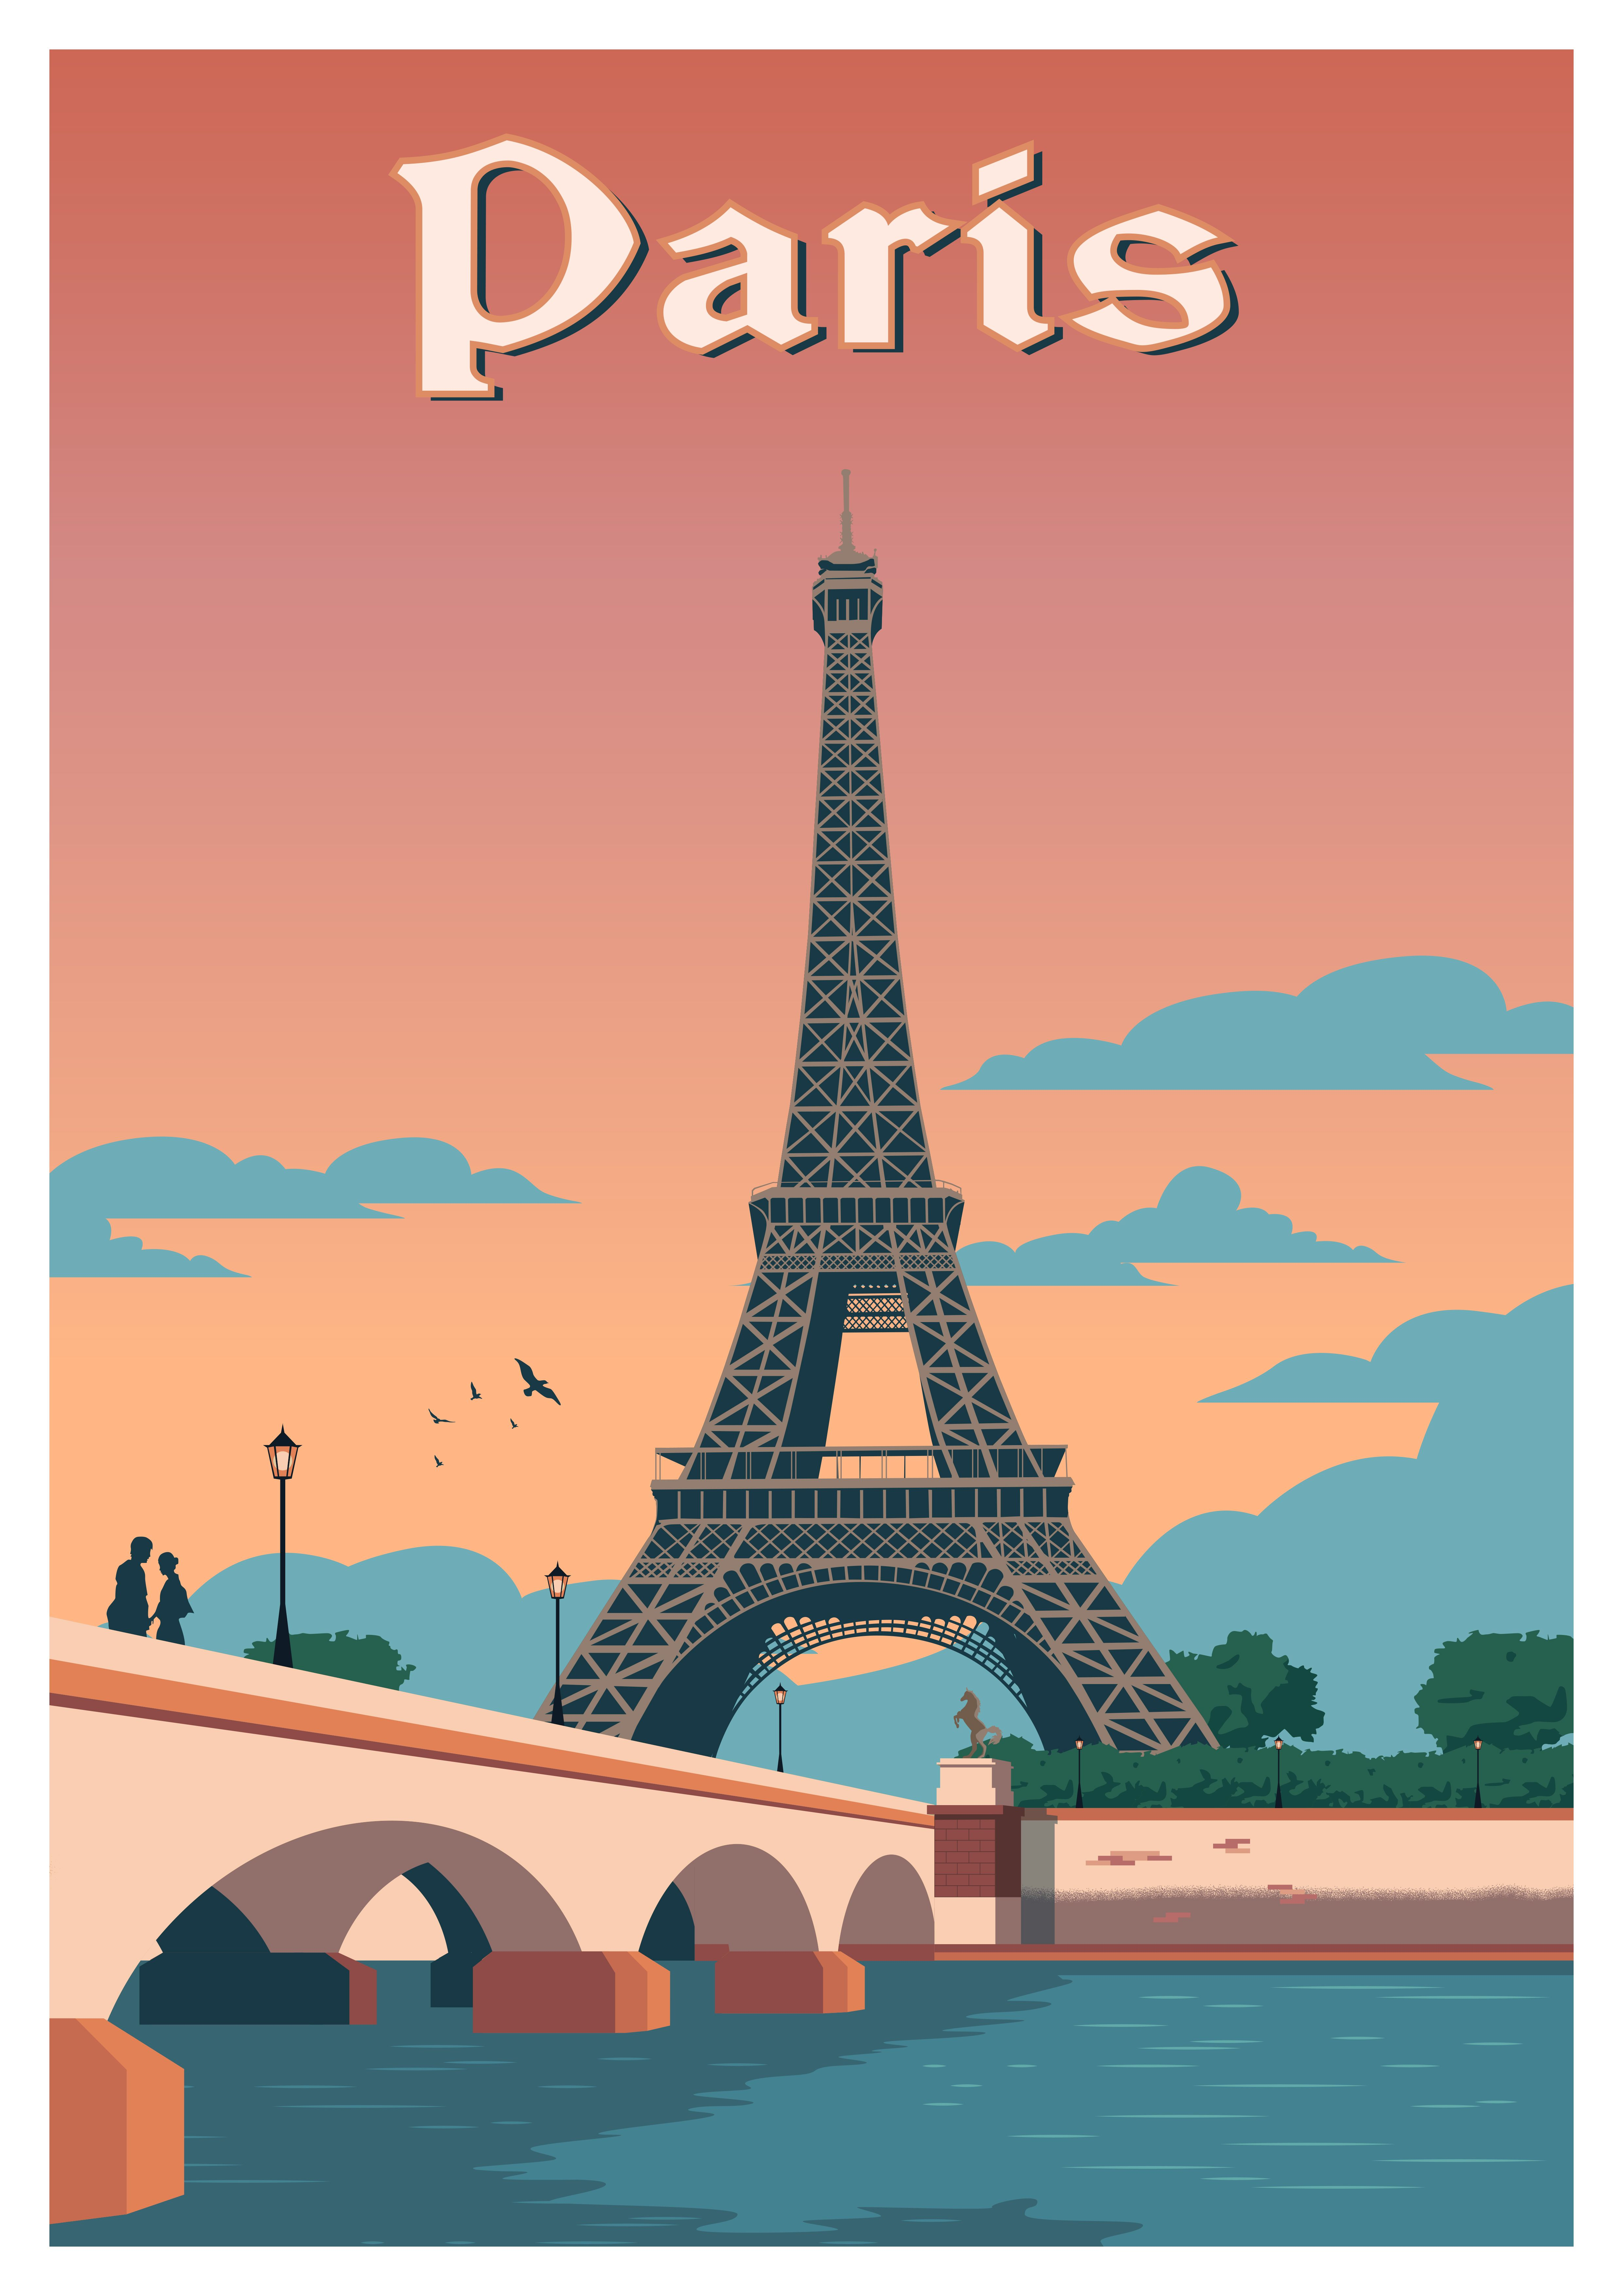 BARCELONA SPAIN TRAVEL ANTIQUE POSTER A1 SIZE PRINT FOR YOUR FRAME ART PAINTING